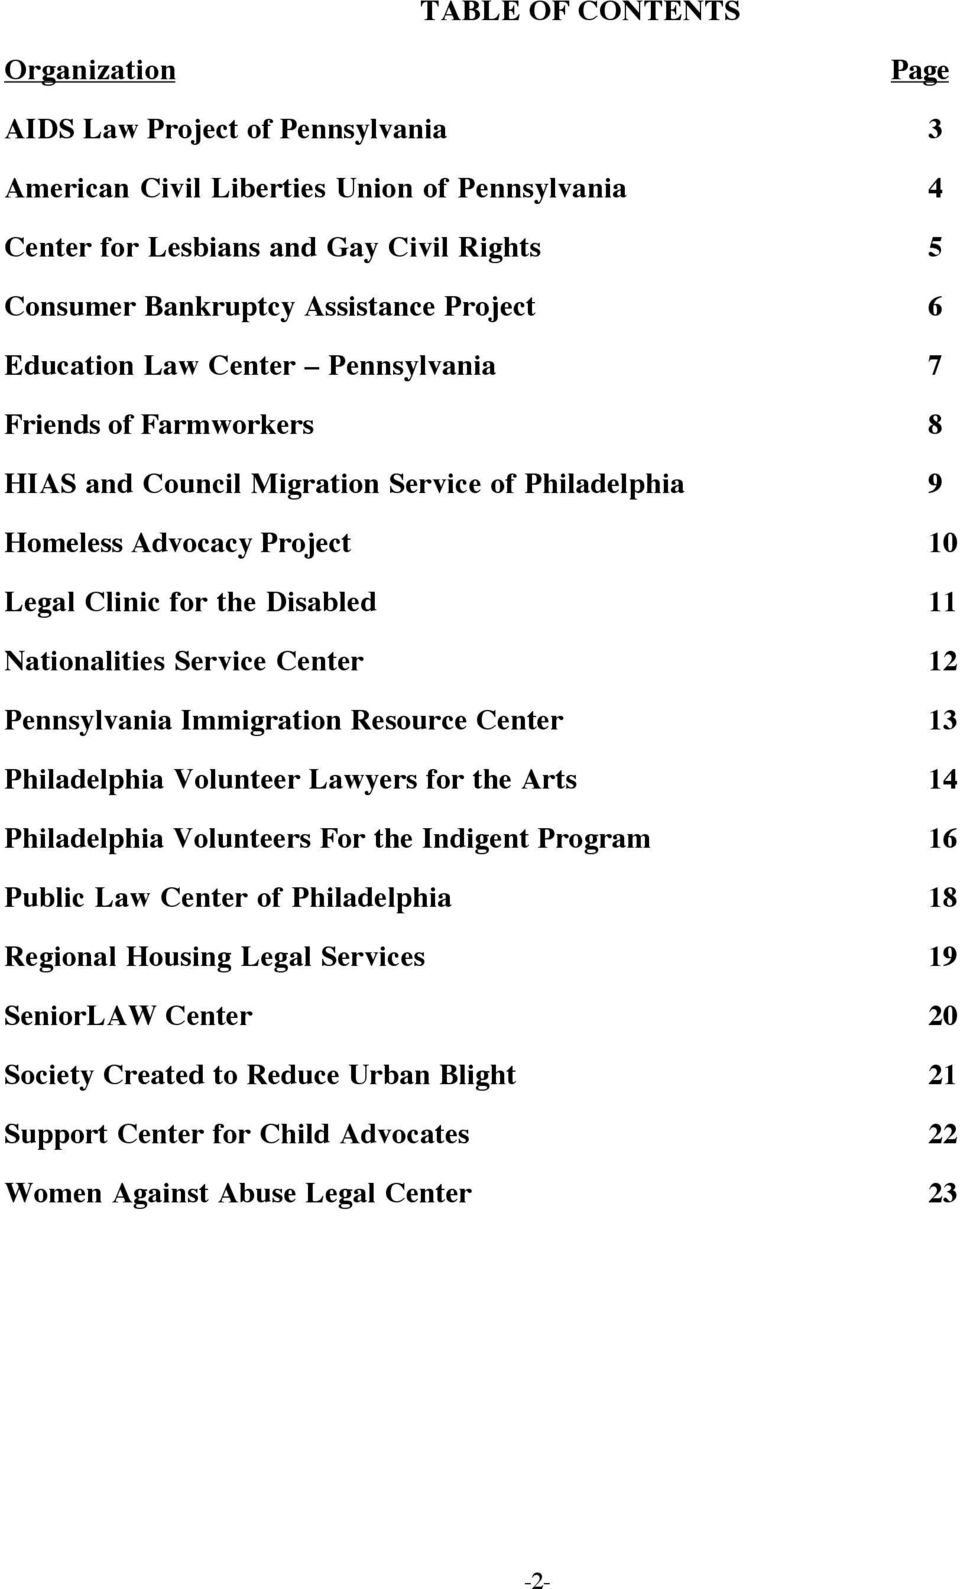 Disabled 11 Nationalities Service Center 12 Pennsylvania Immigration Resource Center 13 Philadelphia Volunteer Lawyers for the Arts 14 Philadelphia Volunteers For the Indigent Program 16